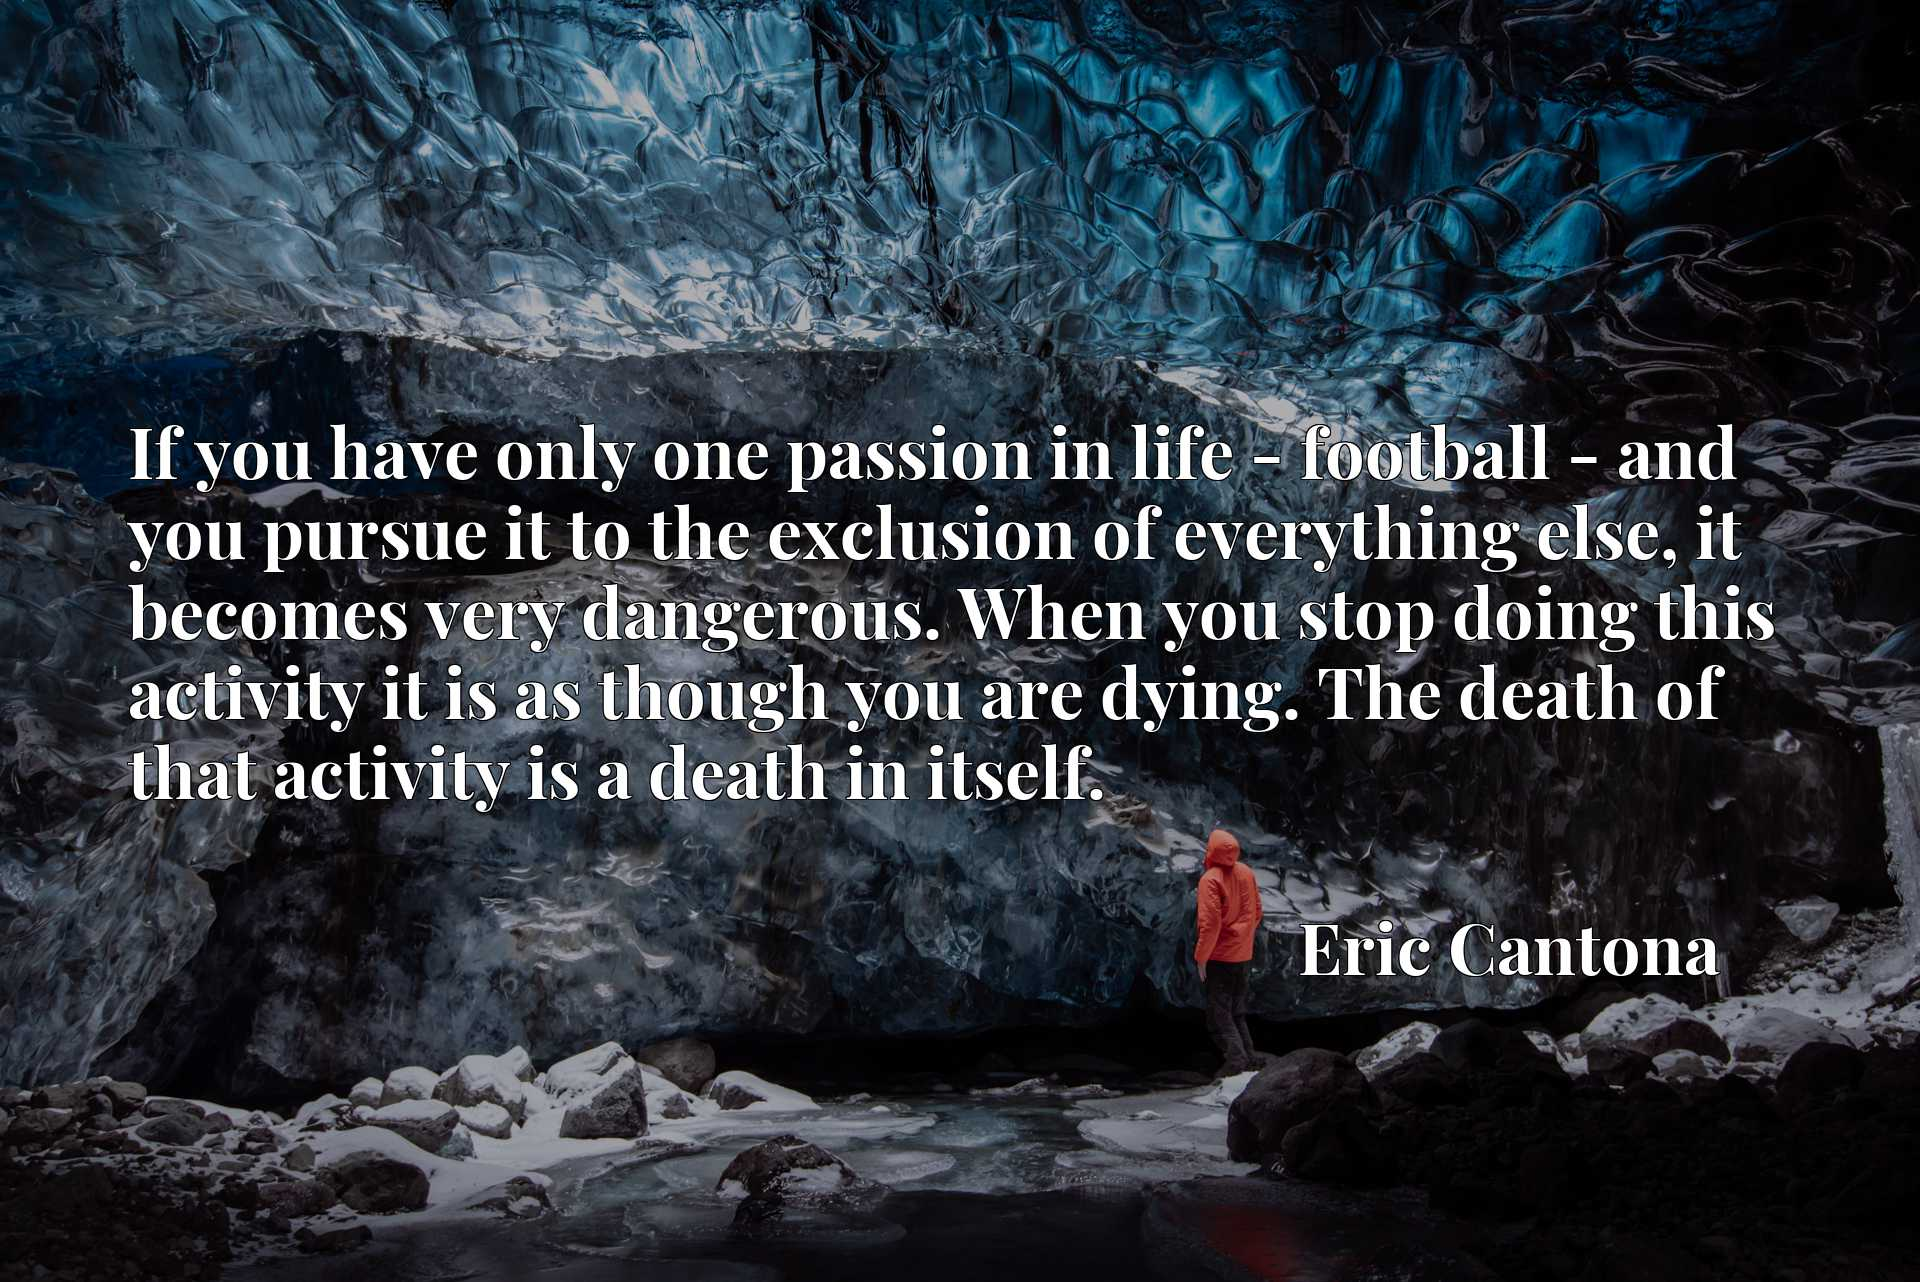 If you have only one passion in life - football - and you pursue it to the exclusion of everything else, it becomes very dangerous. When you stop doing this activity it is as though you are dying. The death of that activity is a death in itself.